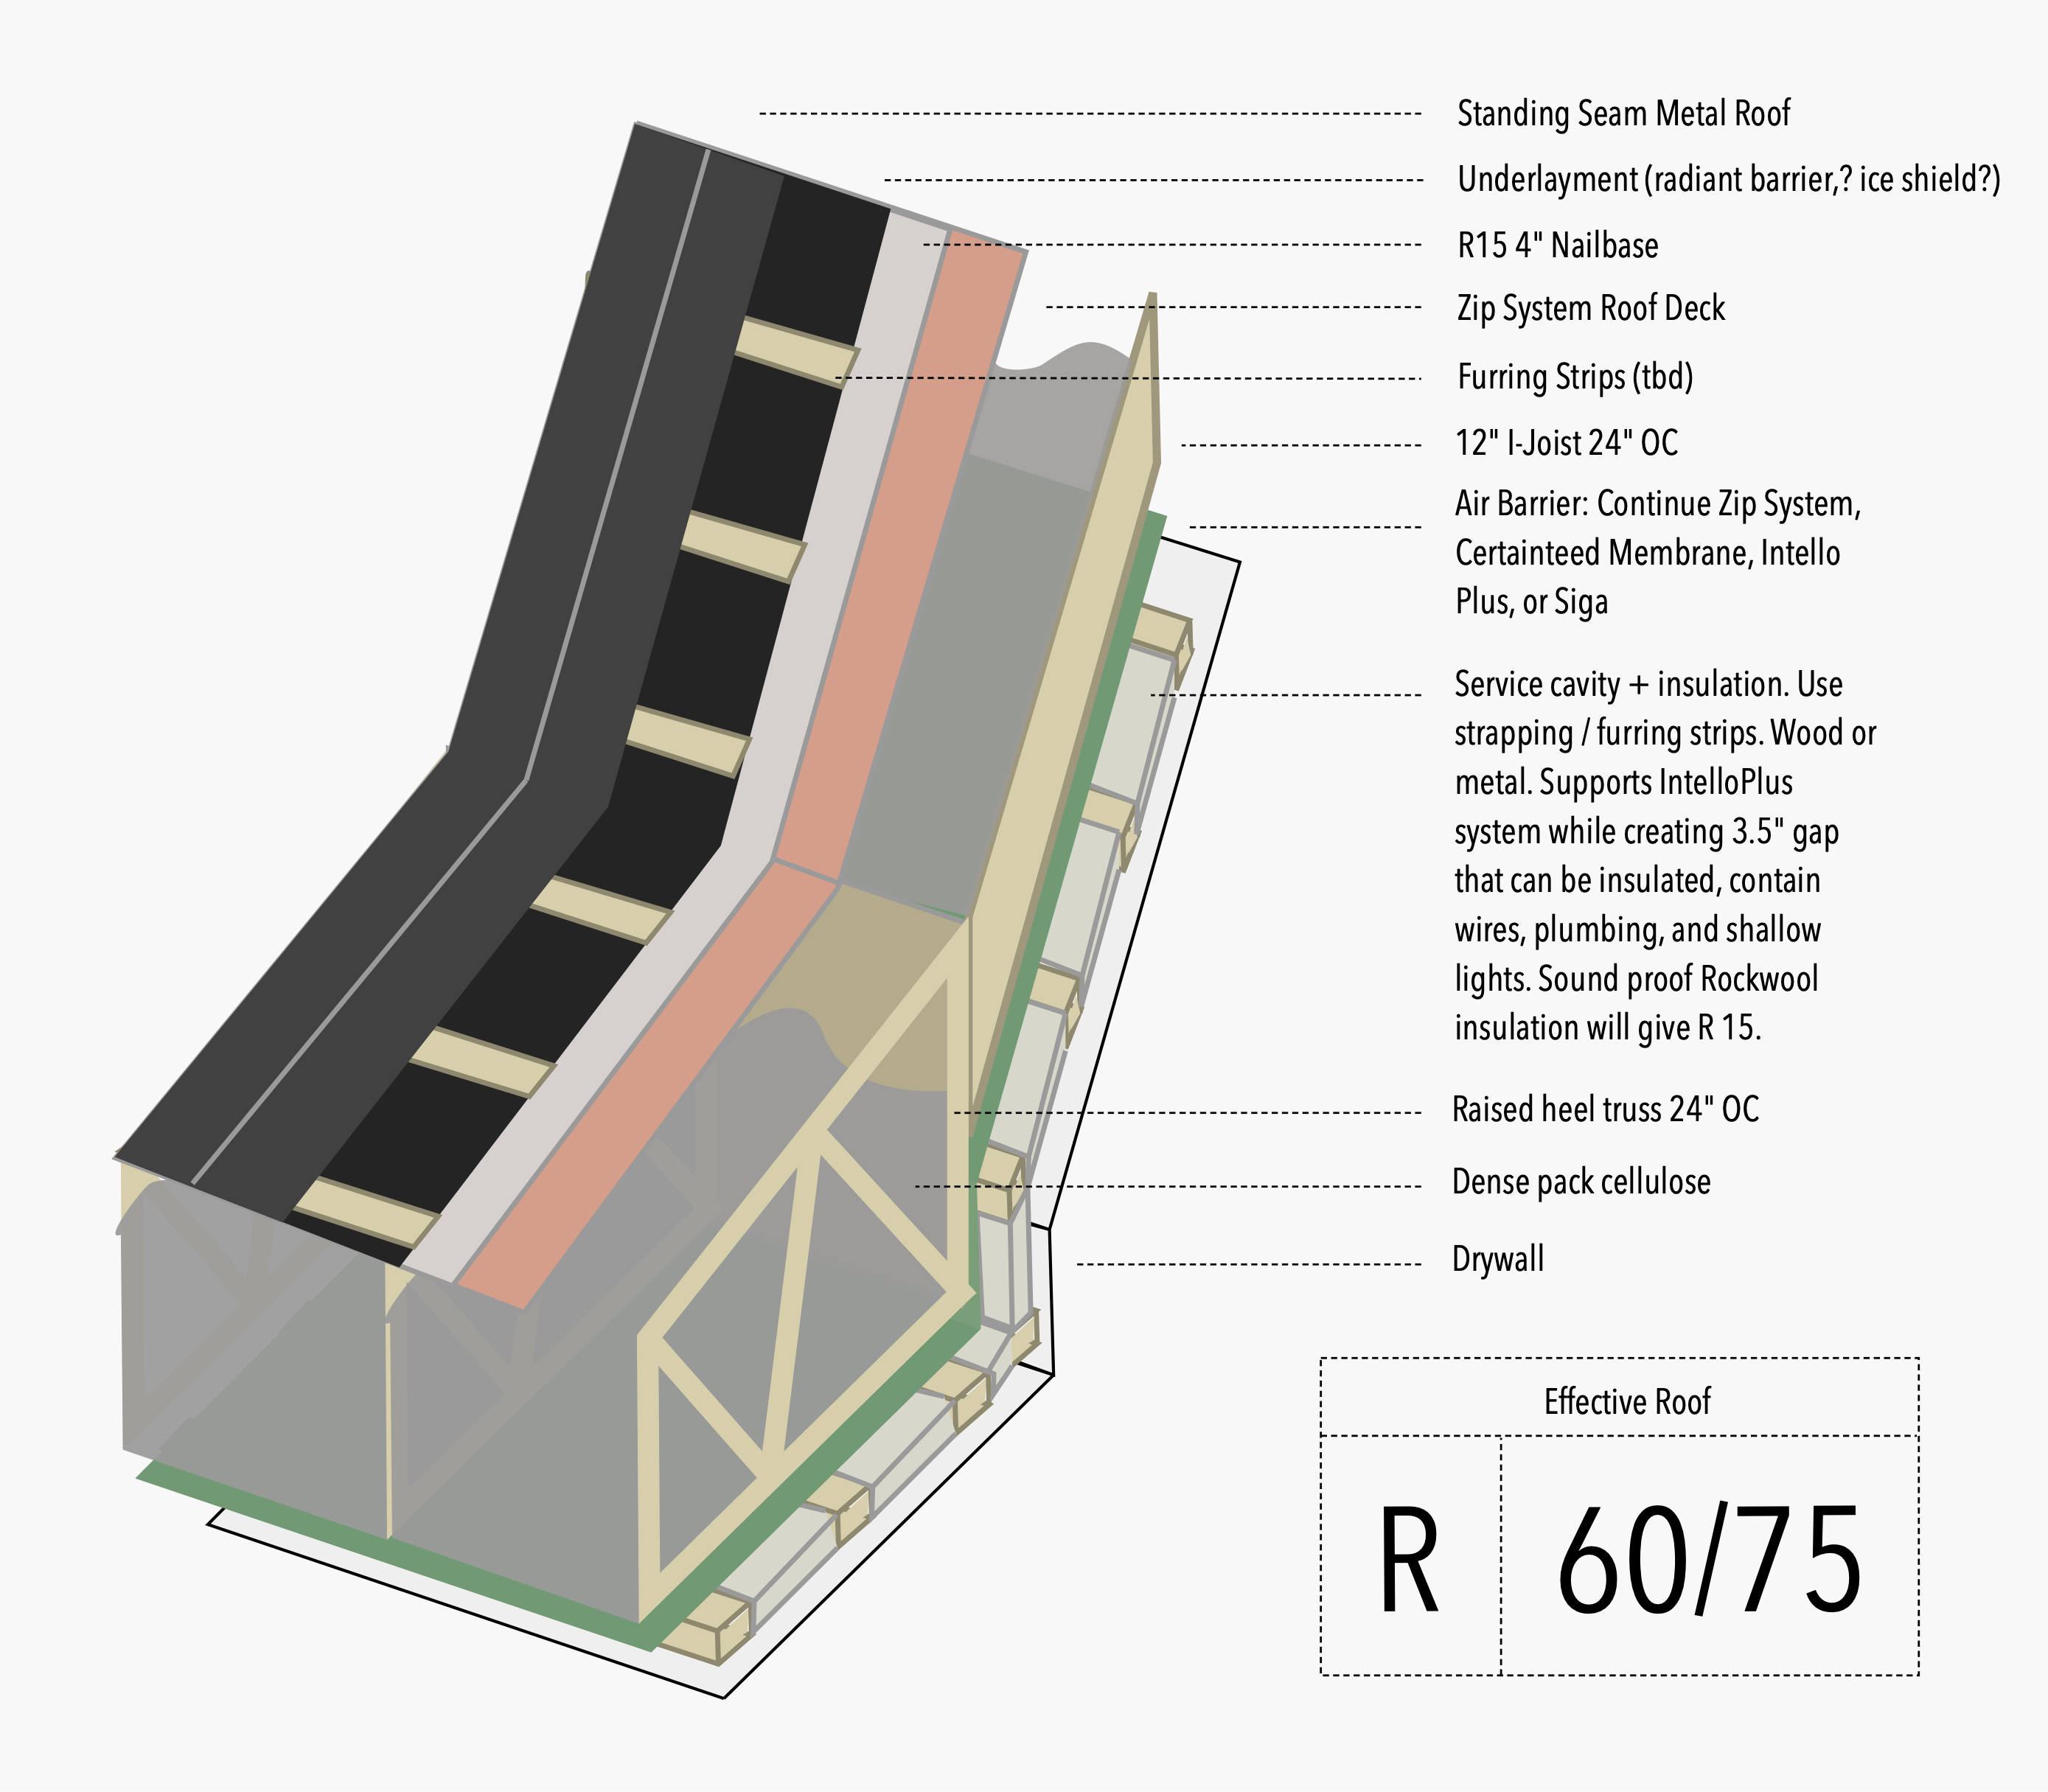 Notebook on Roof Assembly